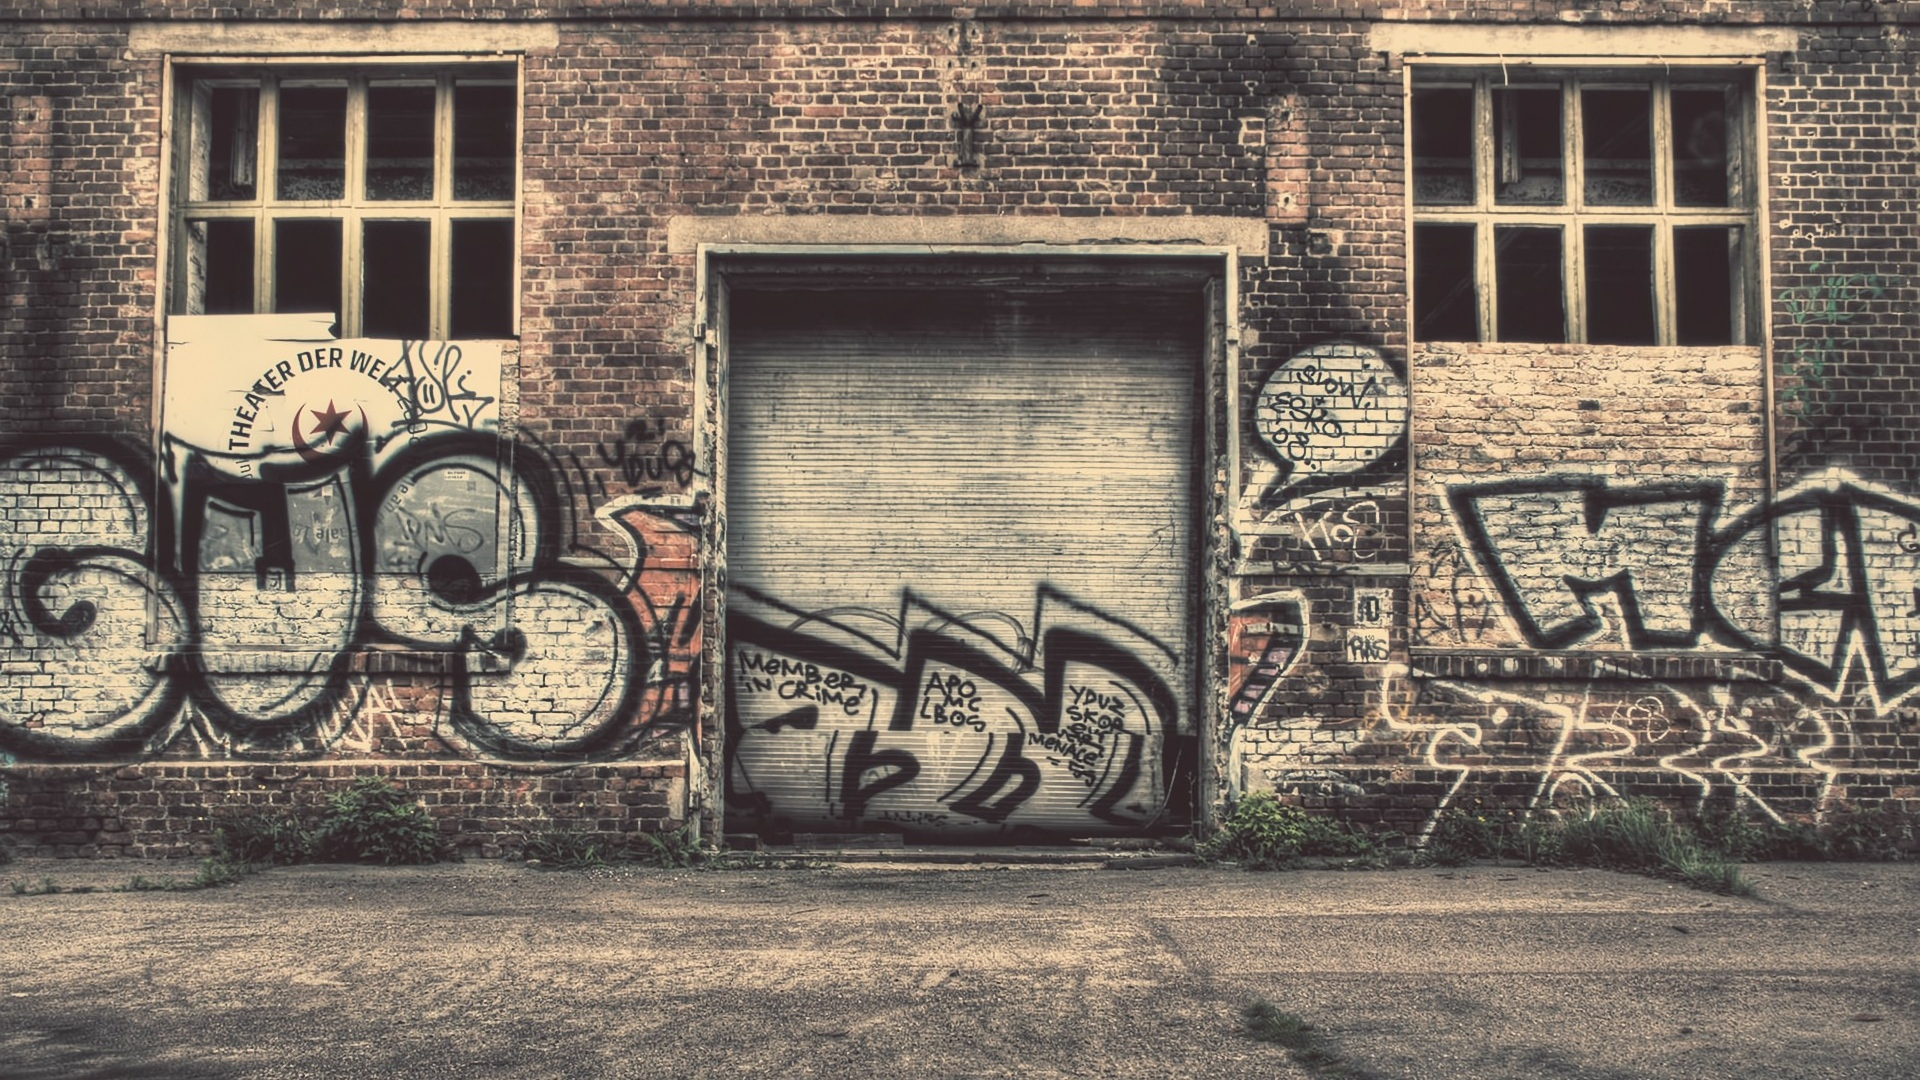 Graffiti photography wallpaper 50838 1920x1080 px hdwallsource graffiti photography wallpaper 50838 voltagebd Image collections